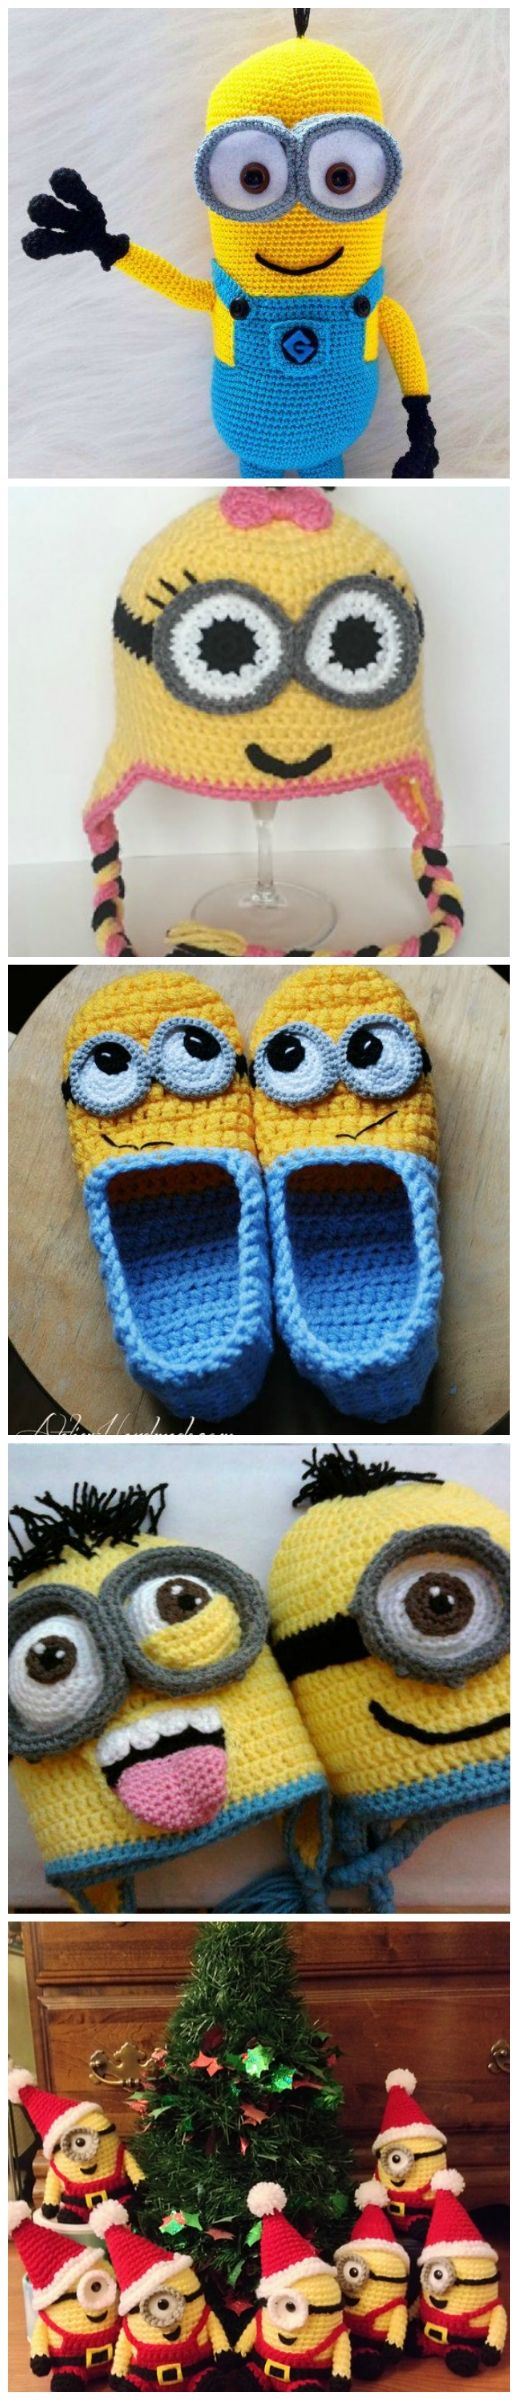 Minion Crochet Patterns